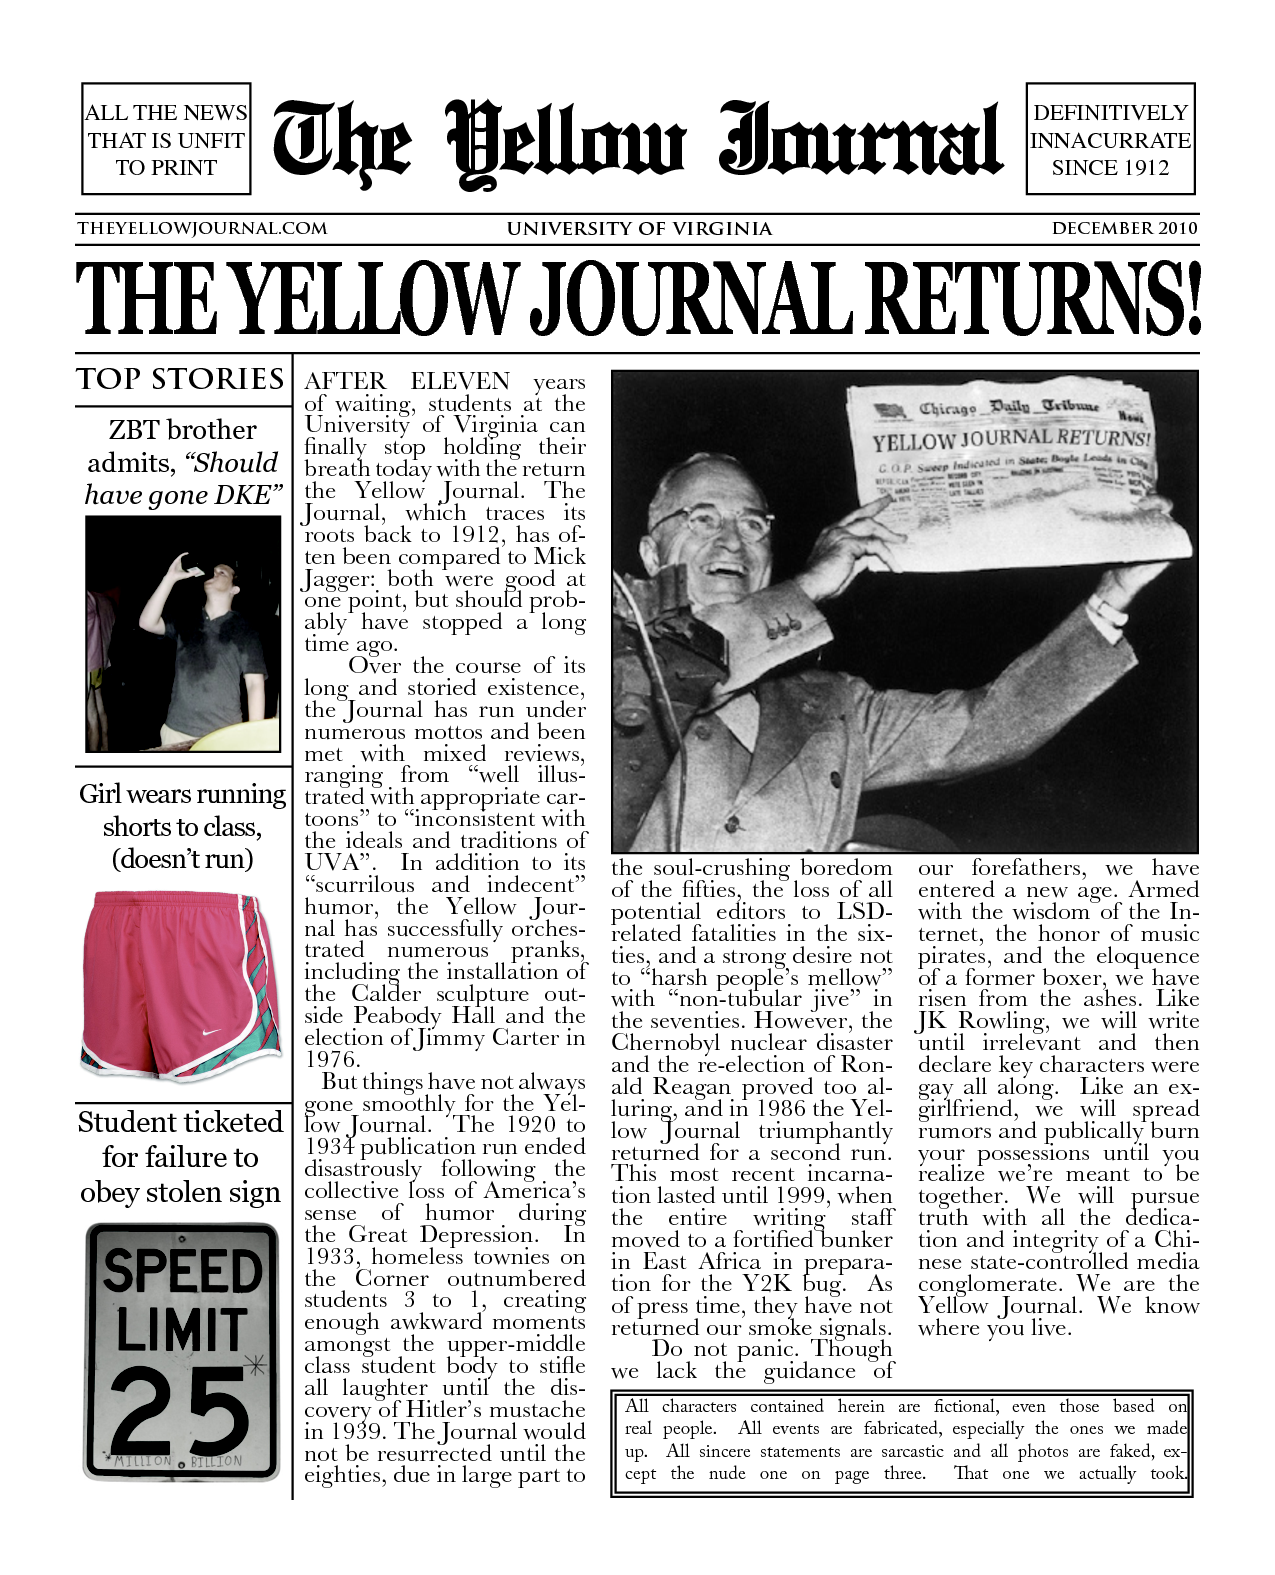 THE YELLOW JOURNAL RETURNS!!!